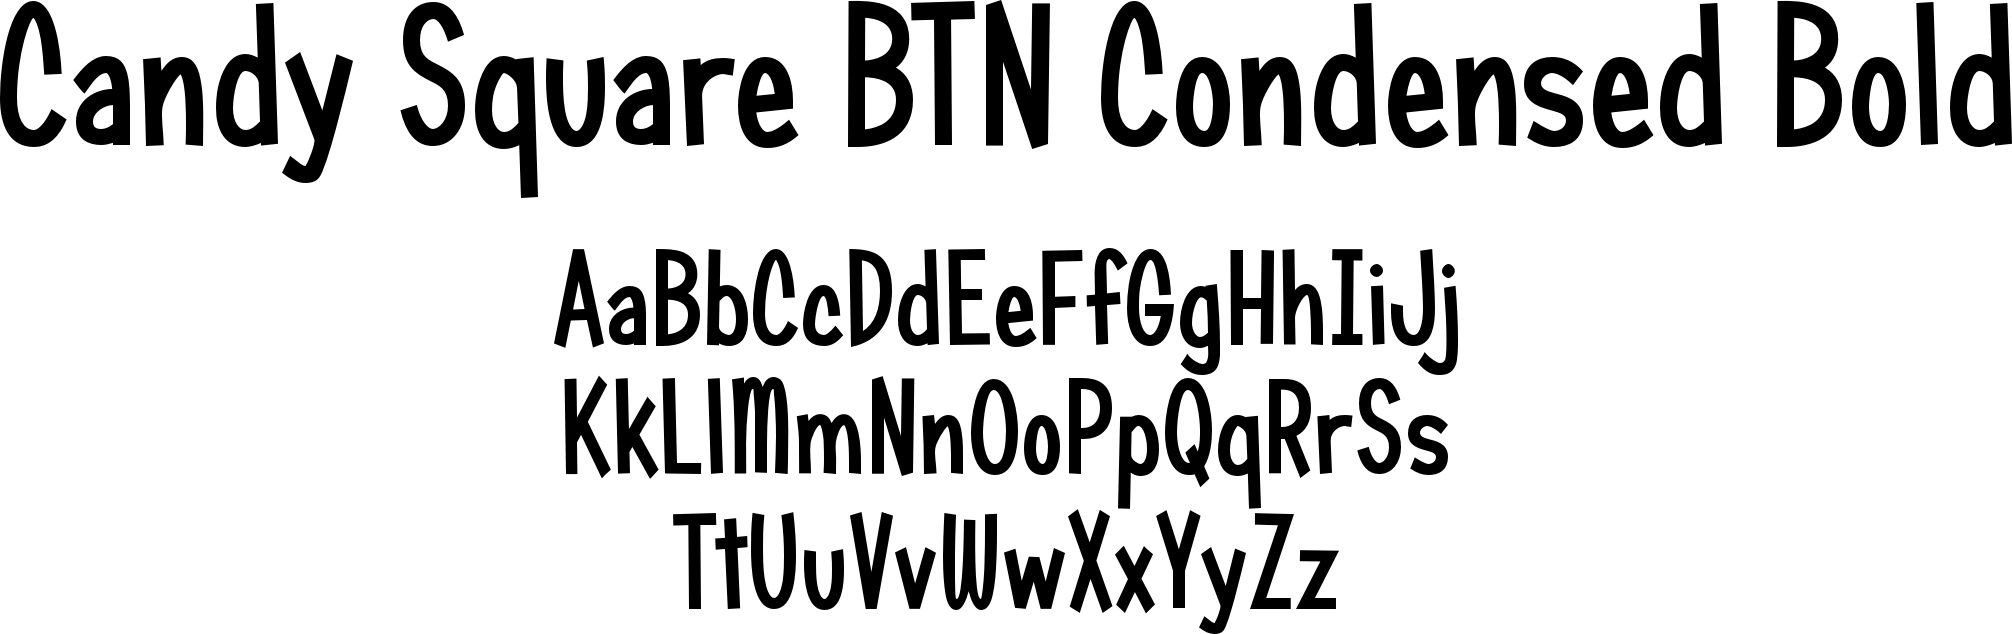 Candy Square BTN Condensed Bold